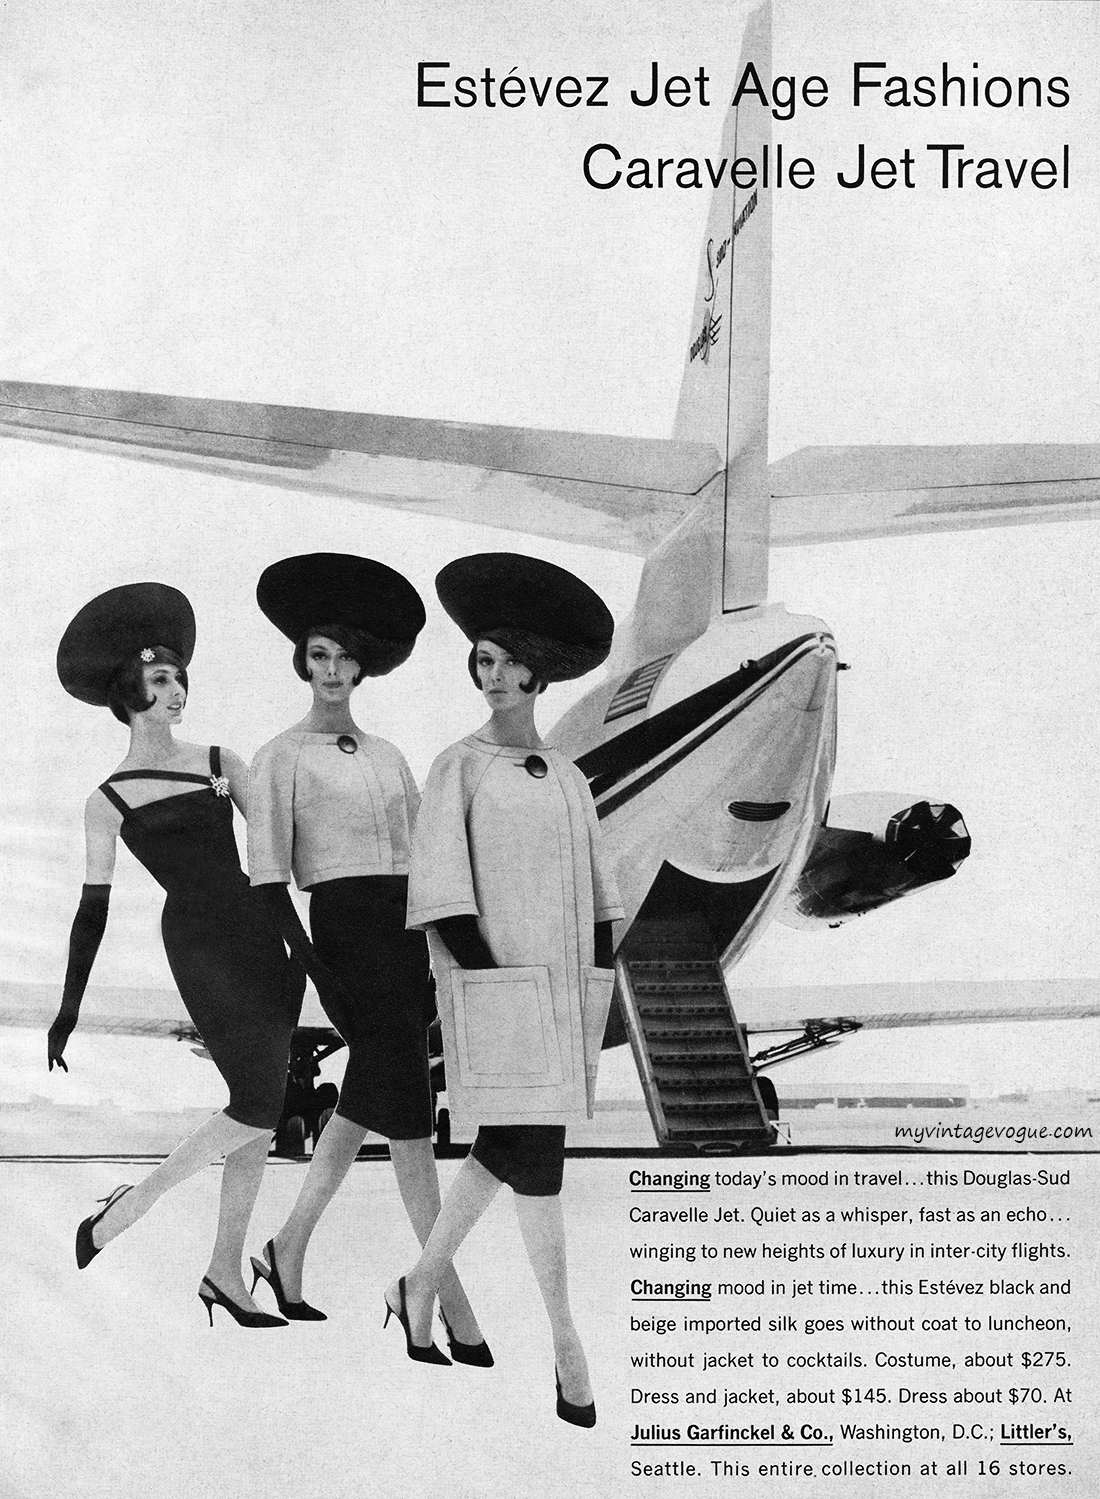 Caravelle Jet Fashion – ad for both the plane and the clothes,1960s